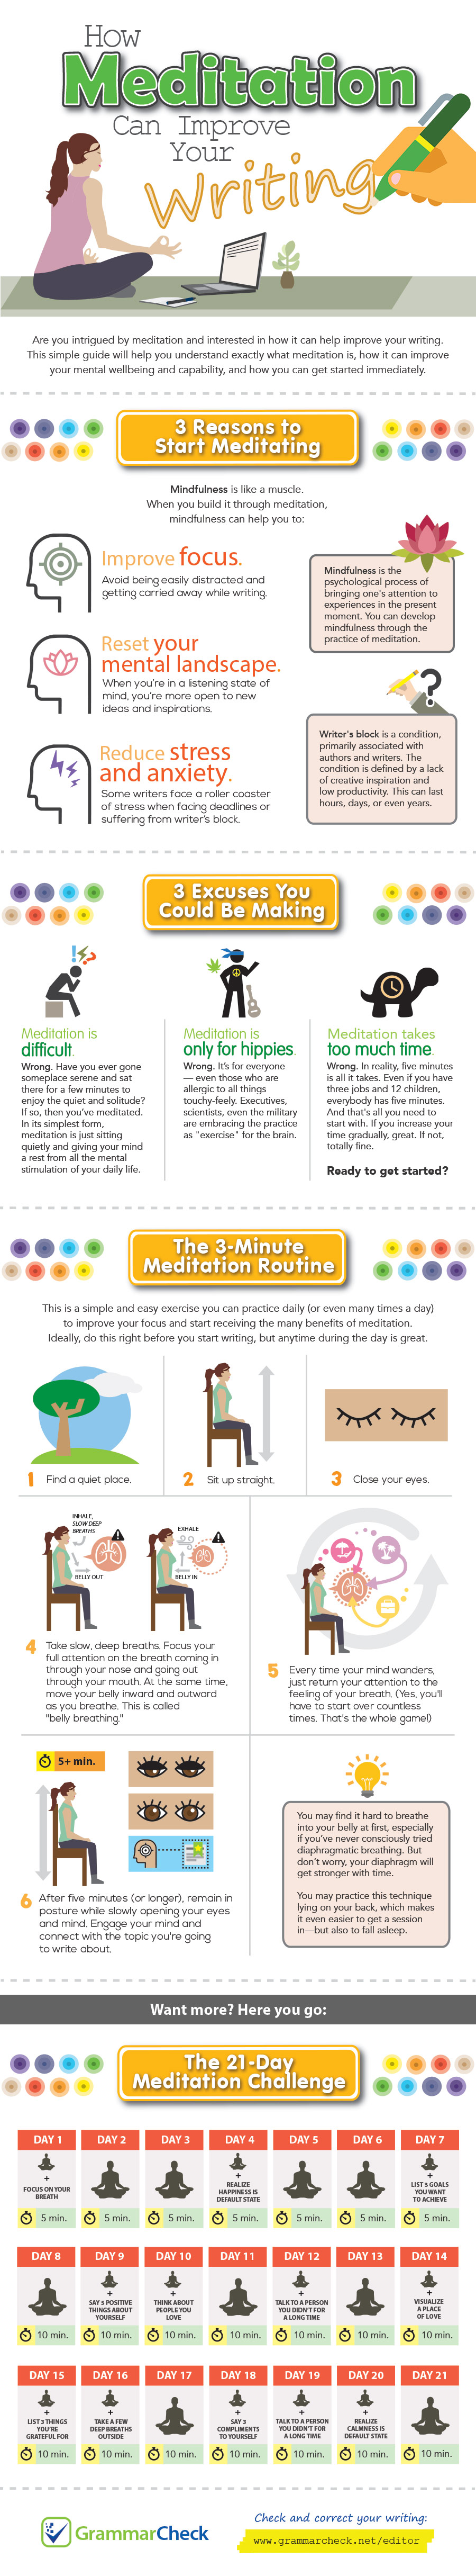 How Meditation Can Improve Your Writing